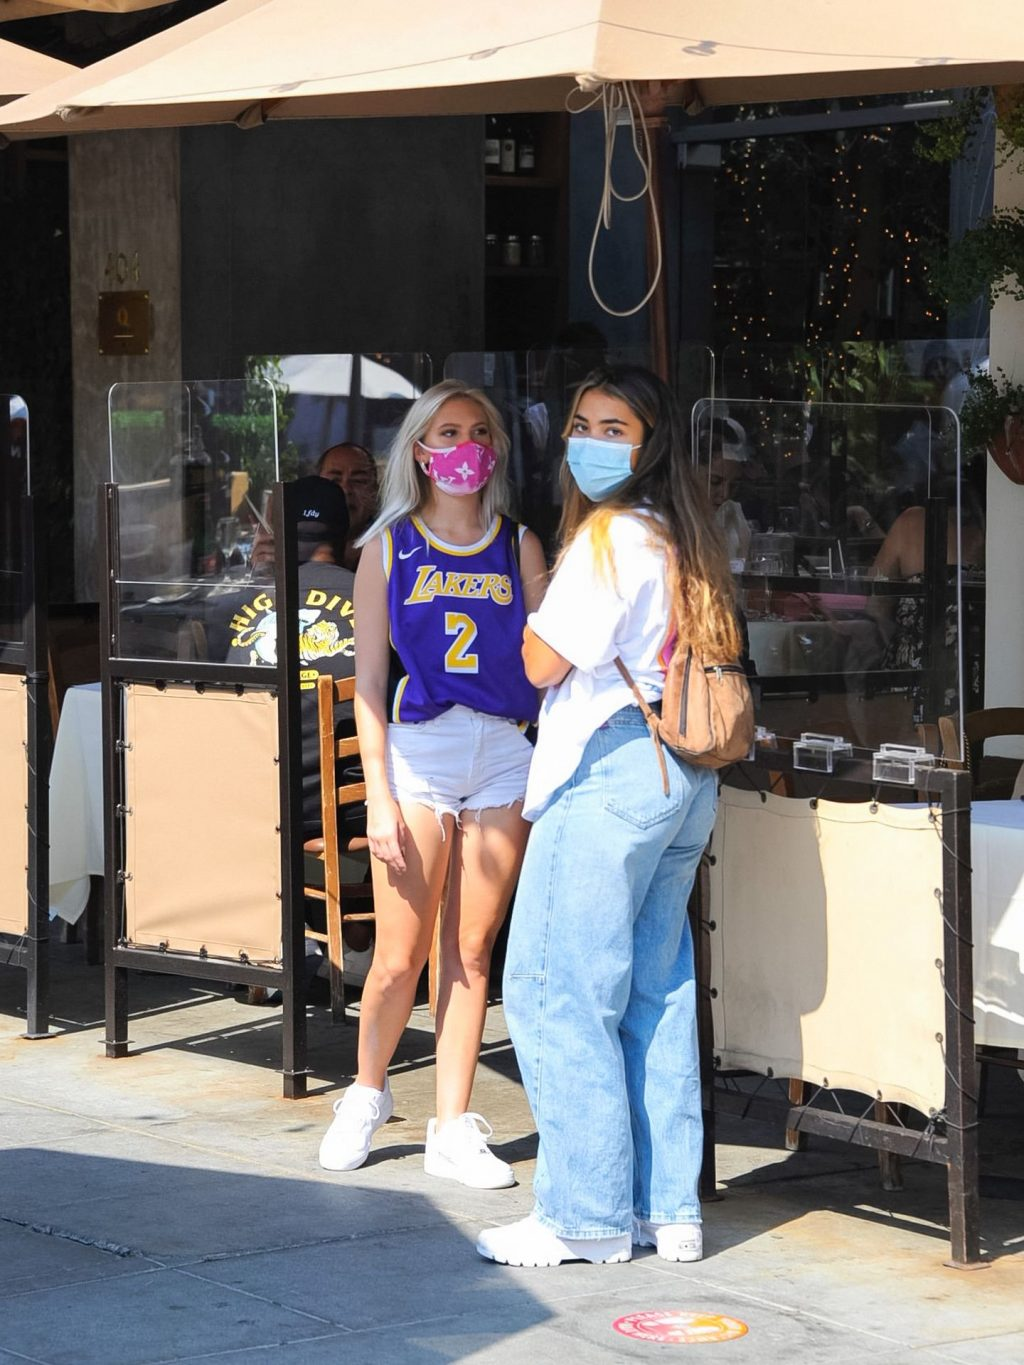 Jordyn Jones, Sienna Gomez, and Simona Gibson Have Lunch Together in LA (47 Photos)